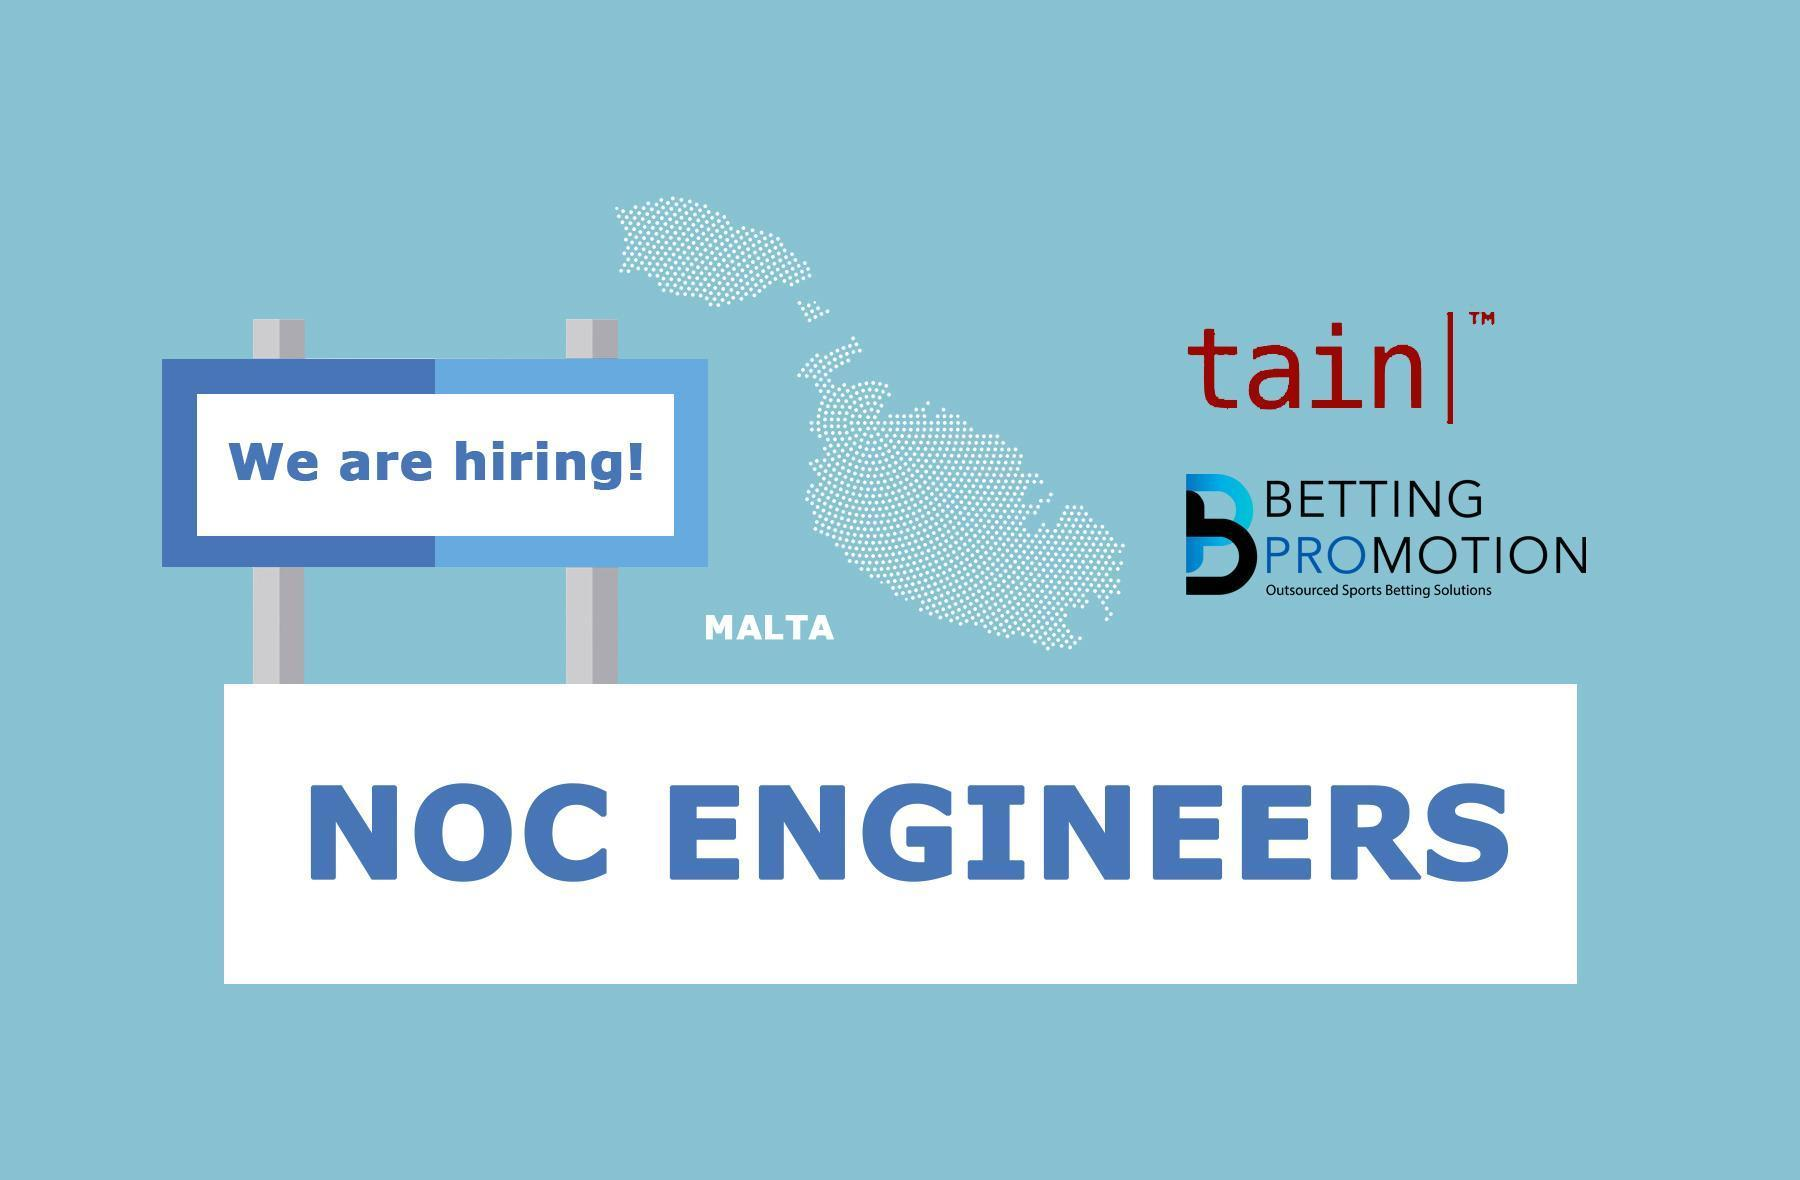 NOC Engineer Betting Promotion Jobs